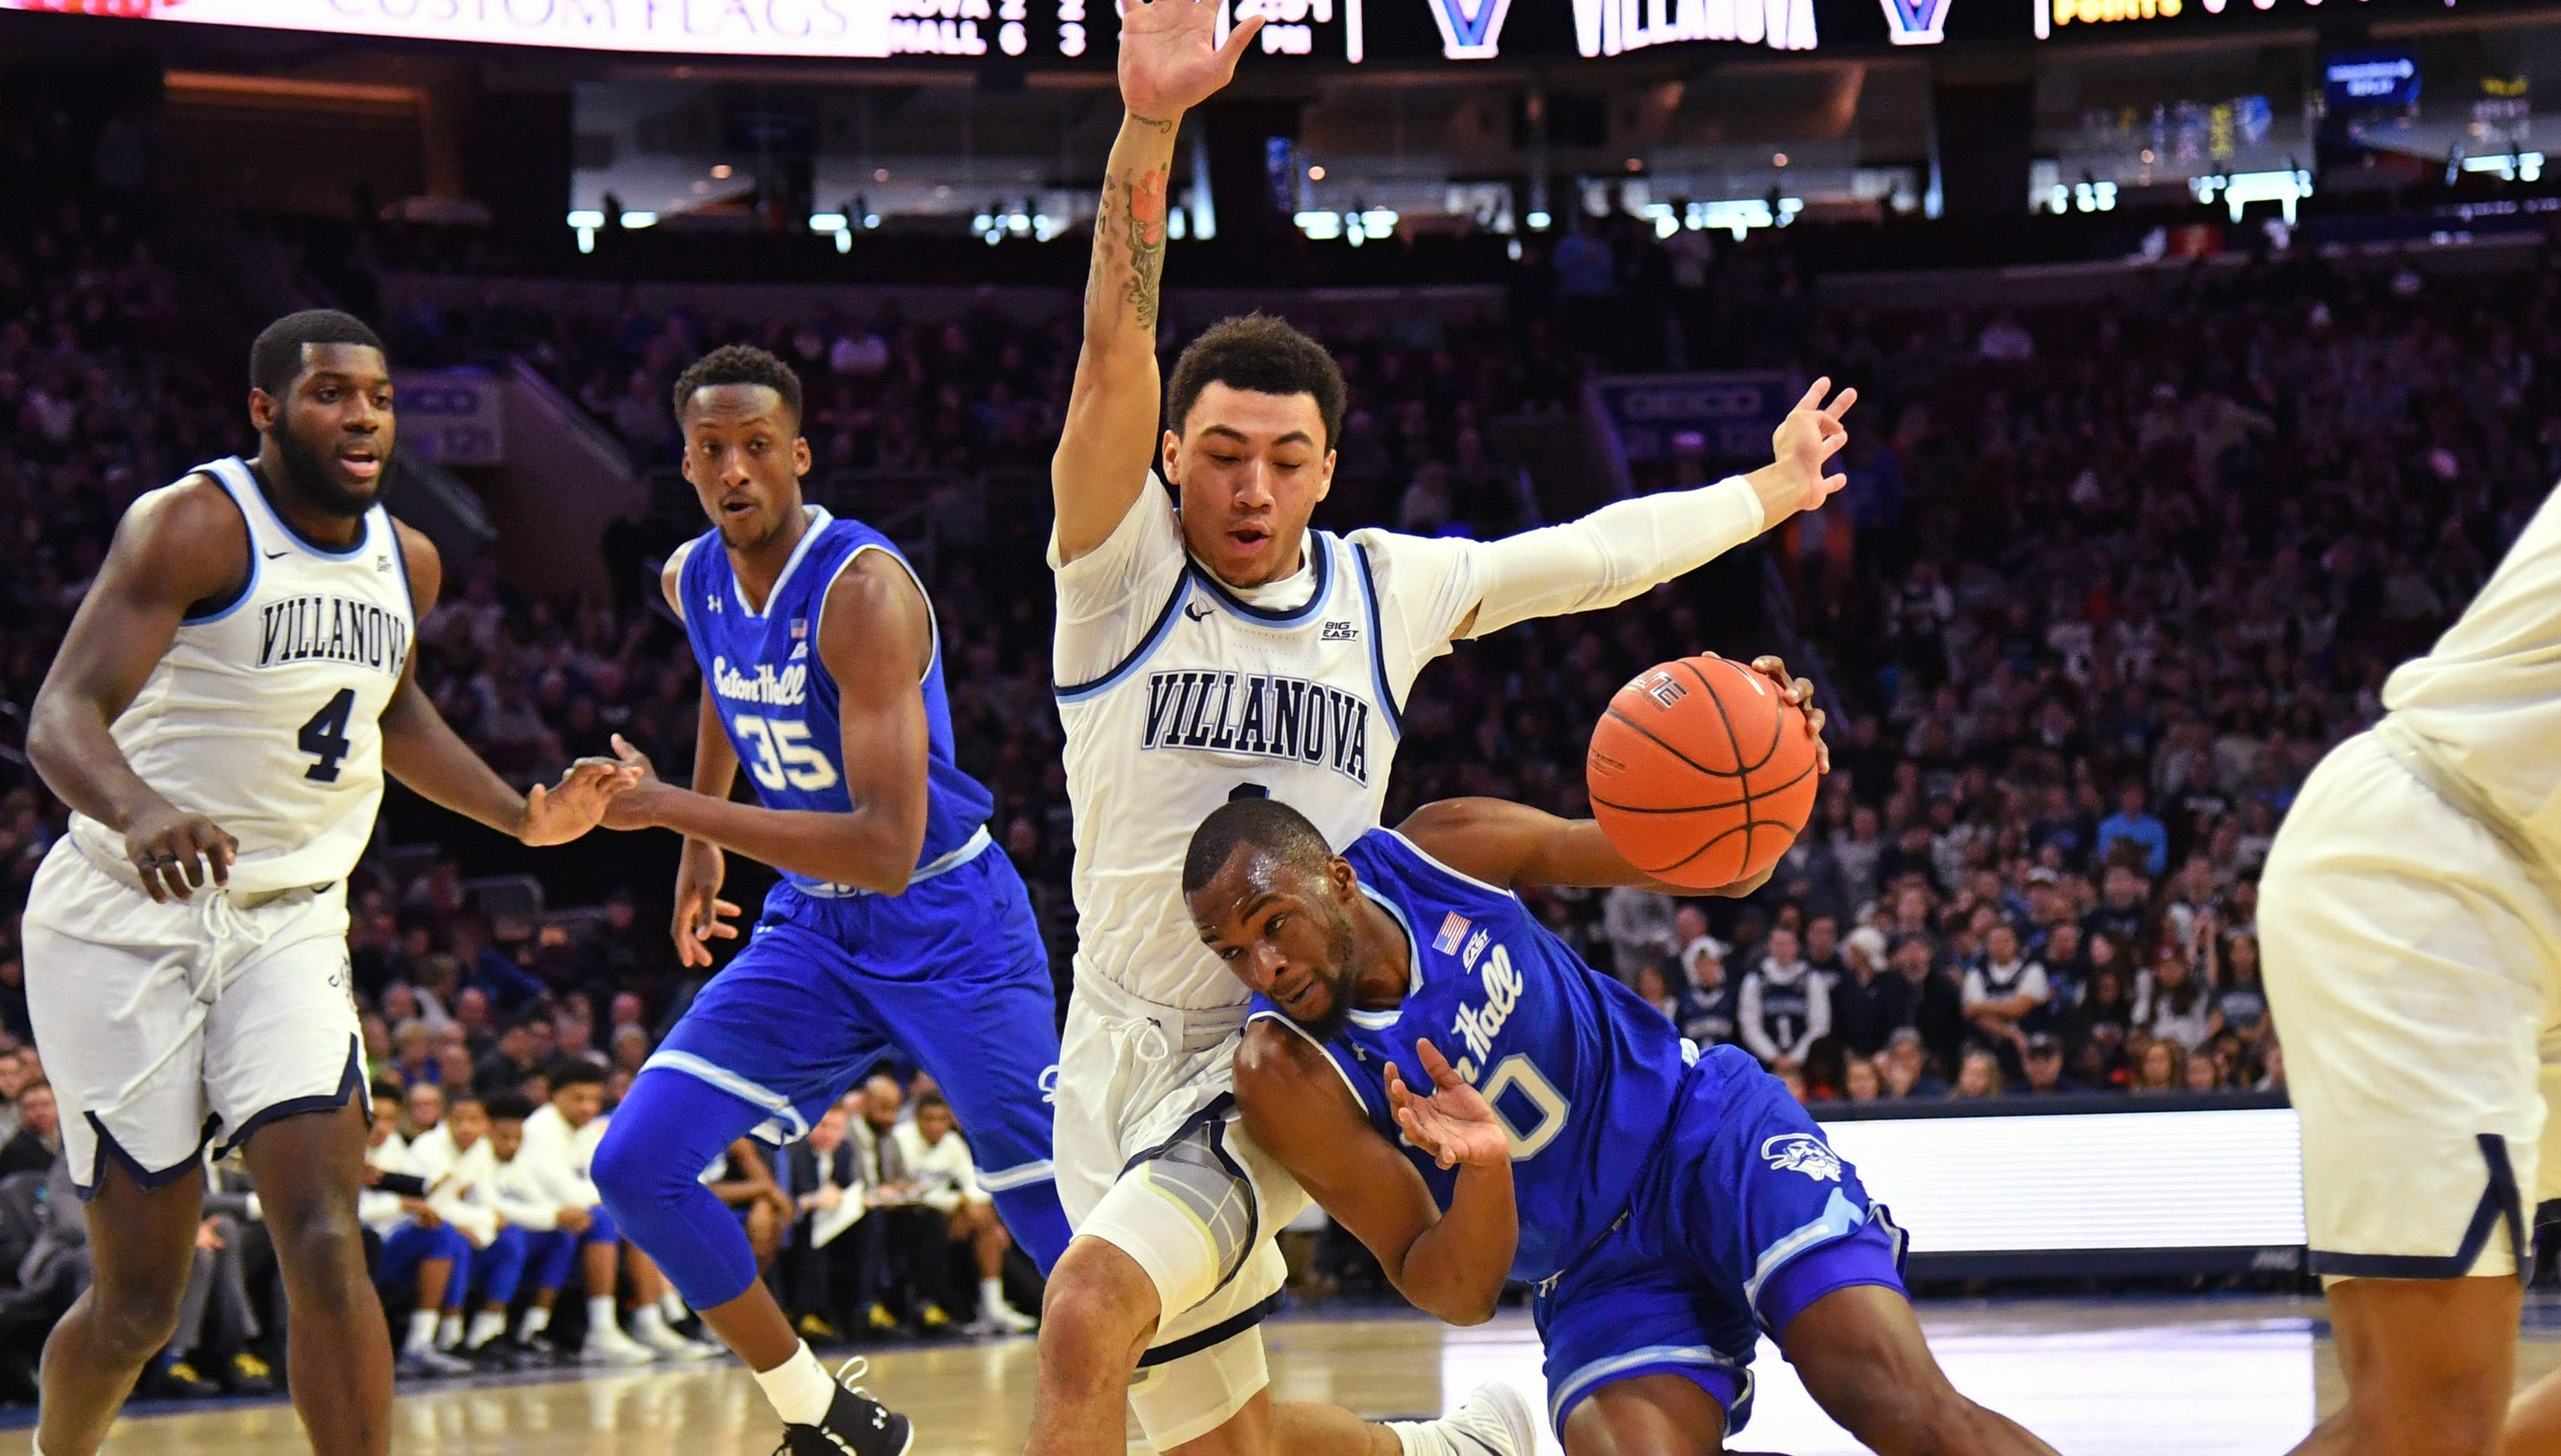 59ce244d7ba Seton Hall basketball crushed at Villanova as skid reaches 26 years and  counting